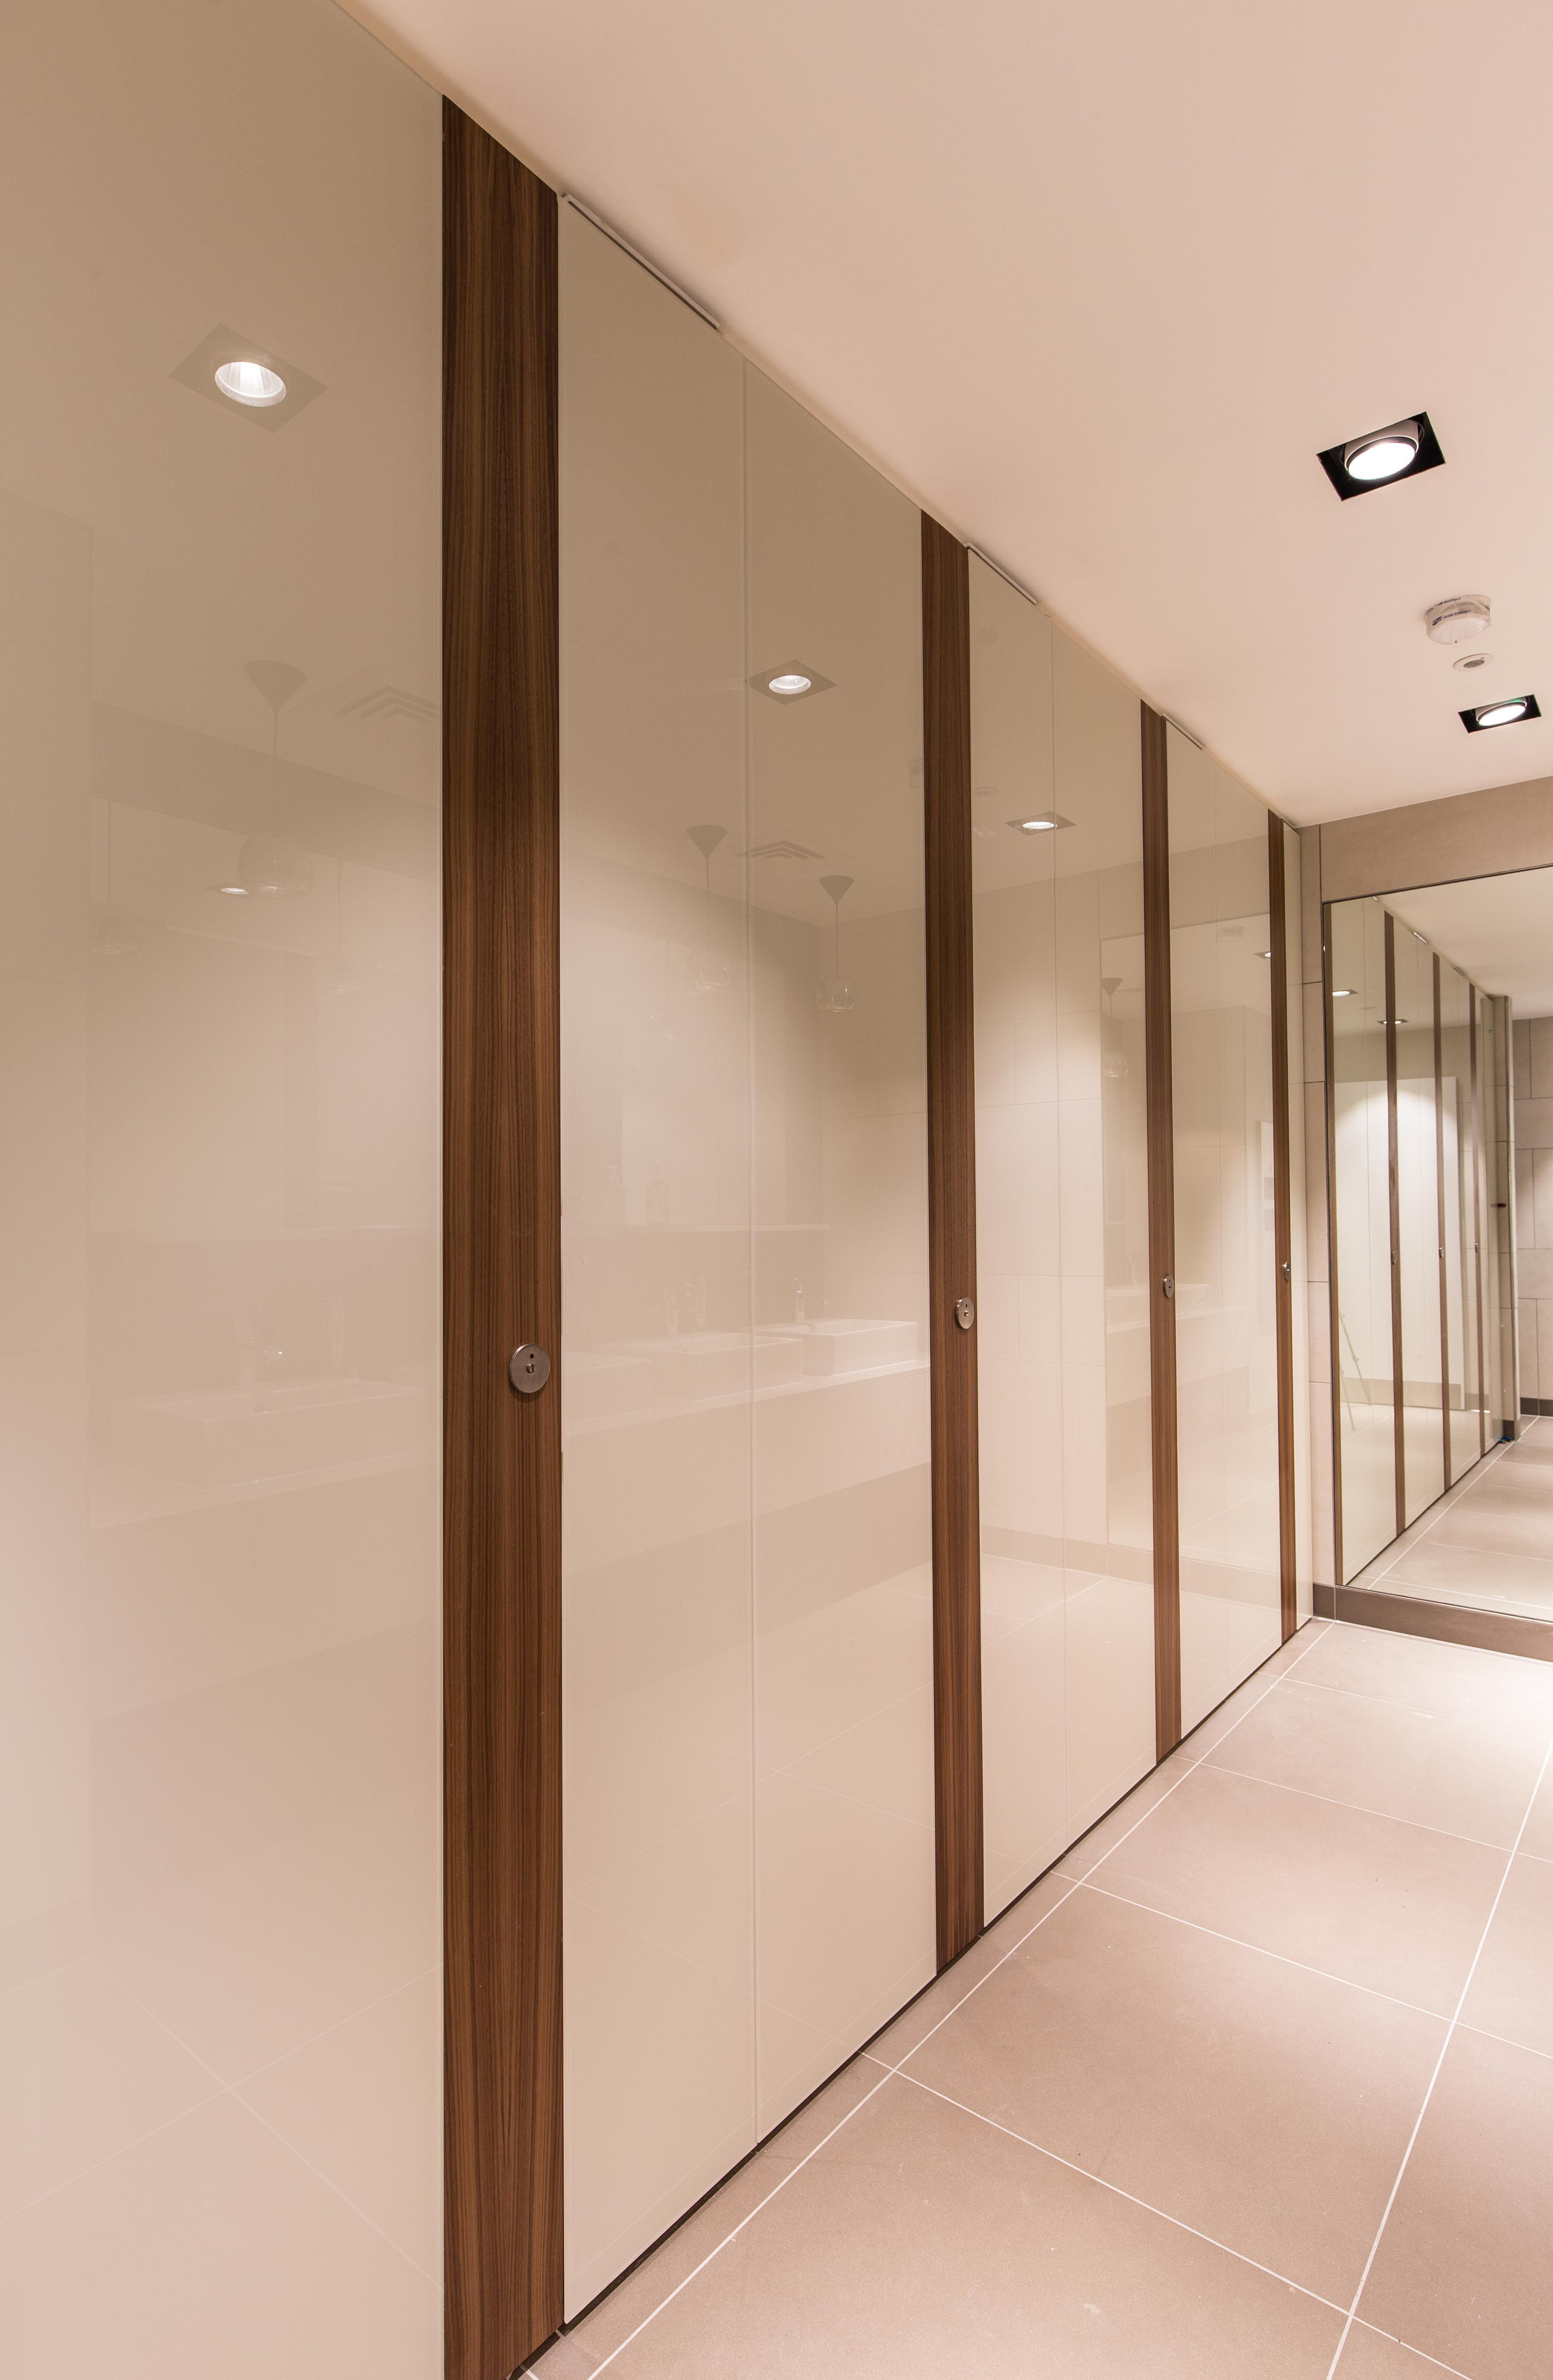 Alto Kristalla glass faced cubicle doors with contrast wood veneer faced pilasters. & Alto Kristalla glass faced cubicle doors with contrast wood veneer ...